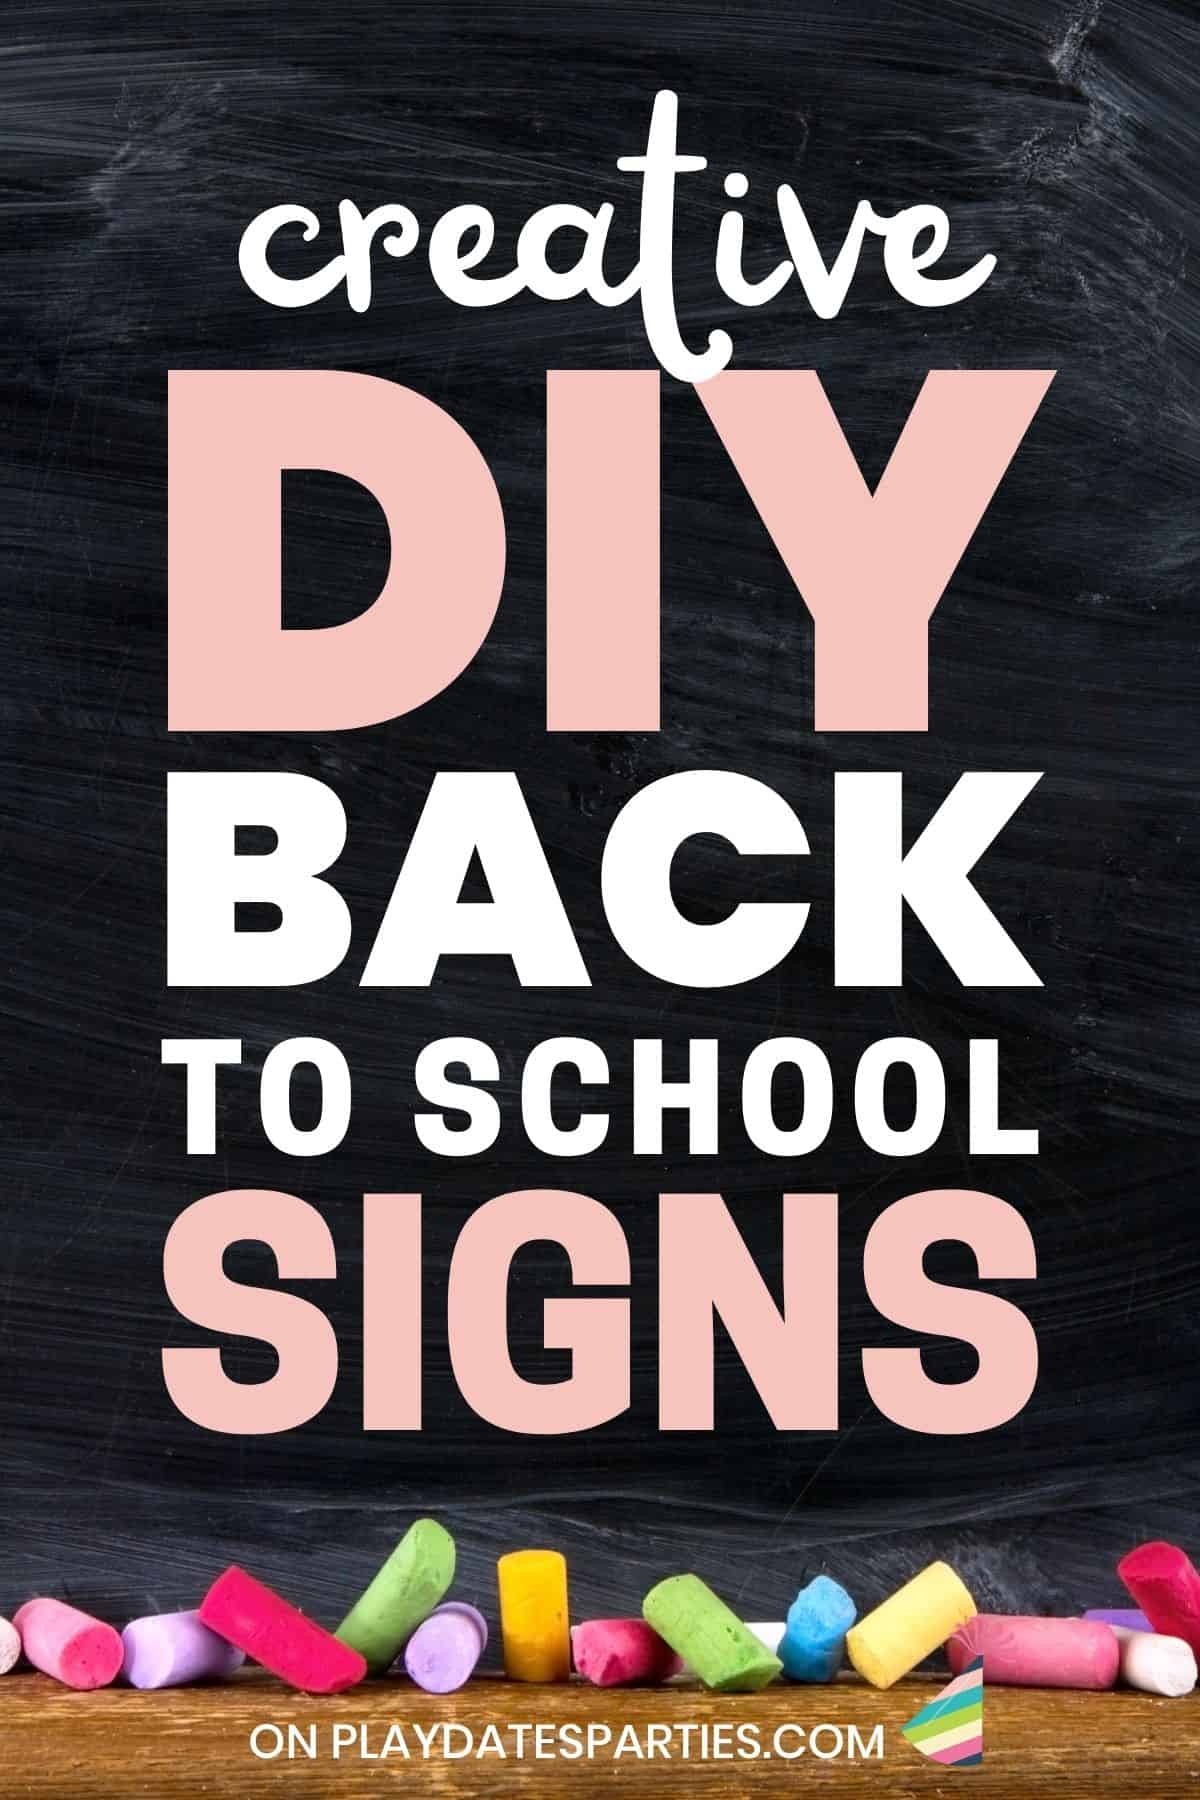 Chalkboard with colorful chalk and text overlay that says creative DIY back to school signs